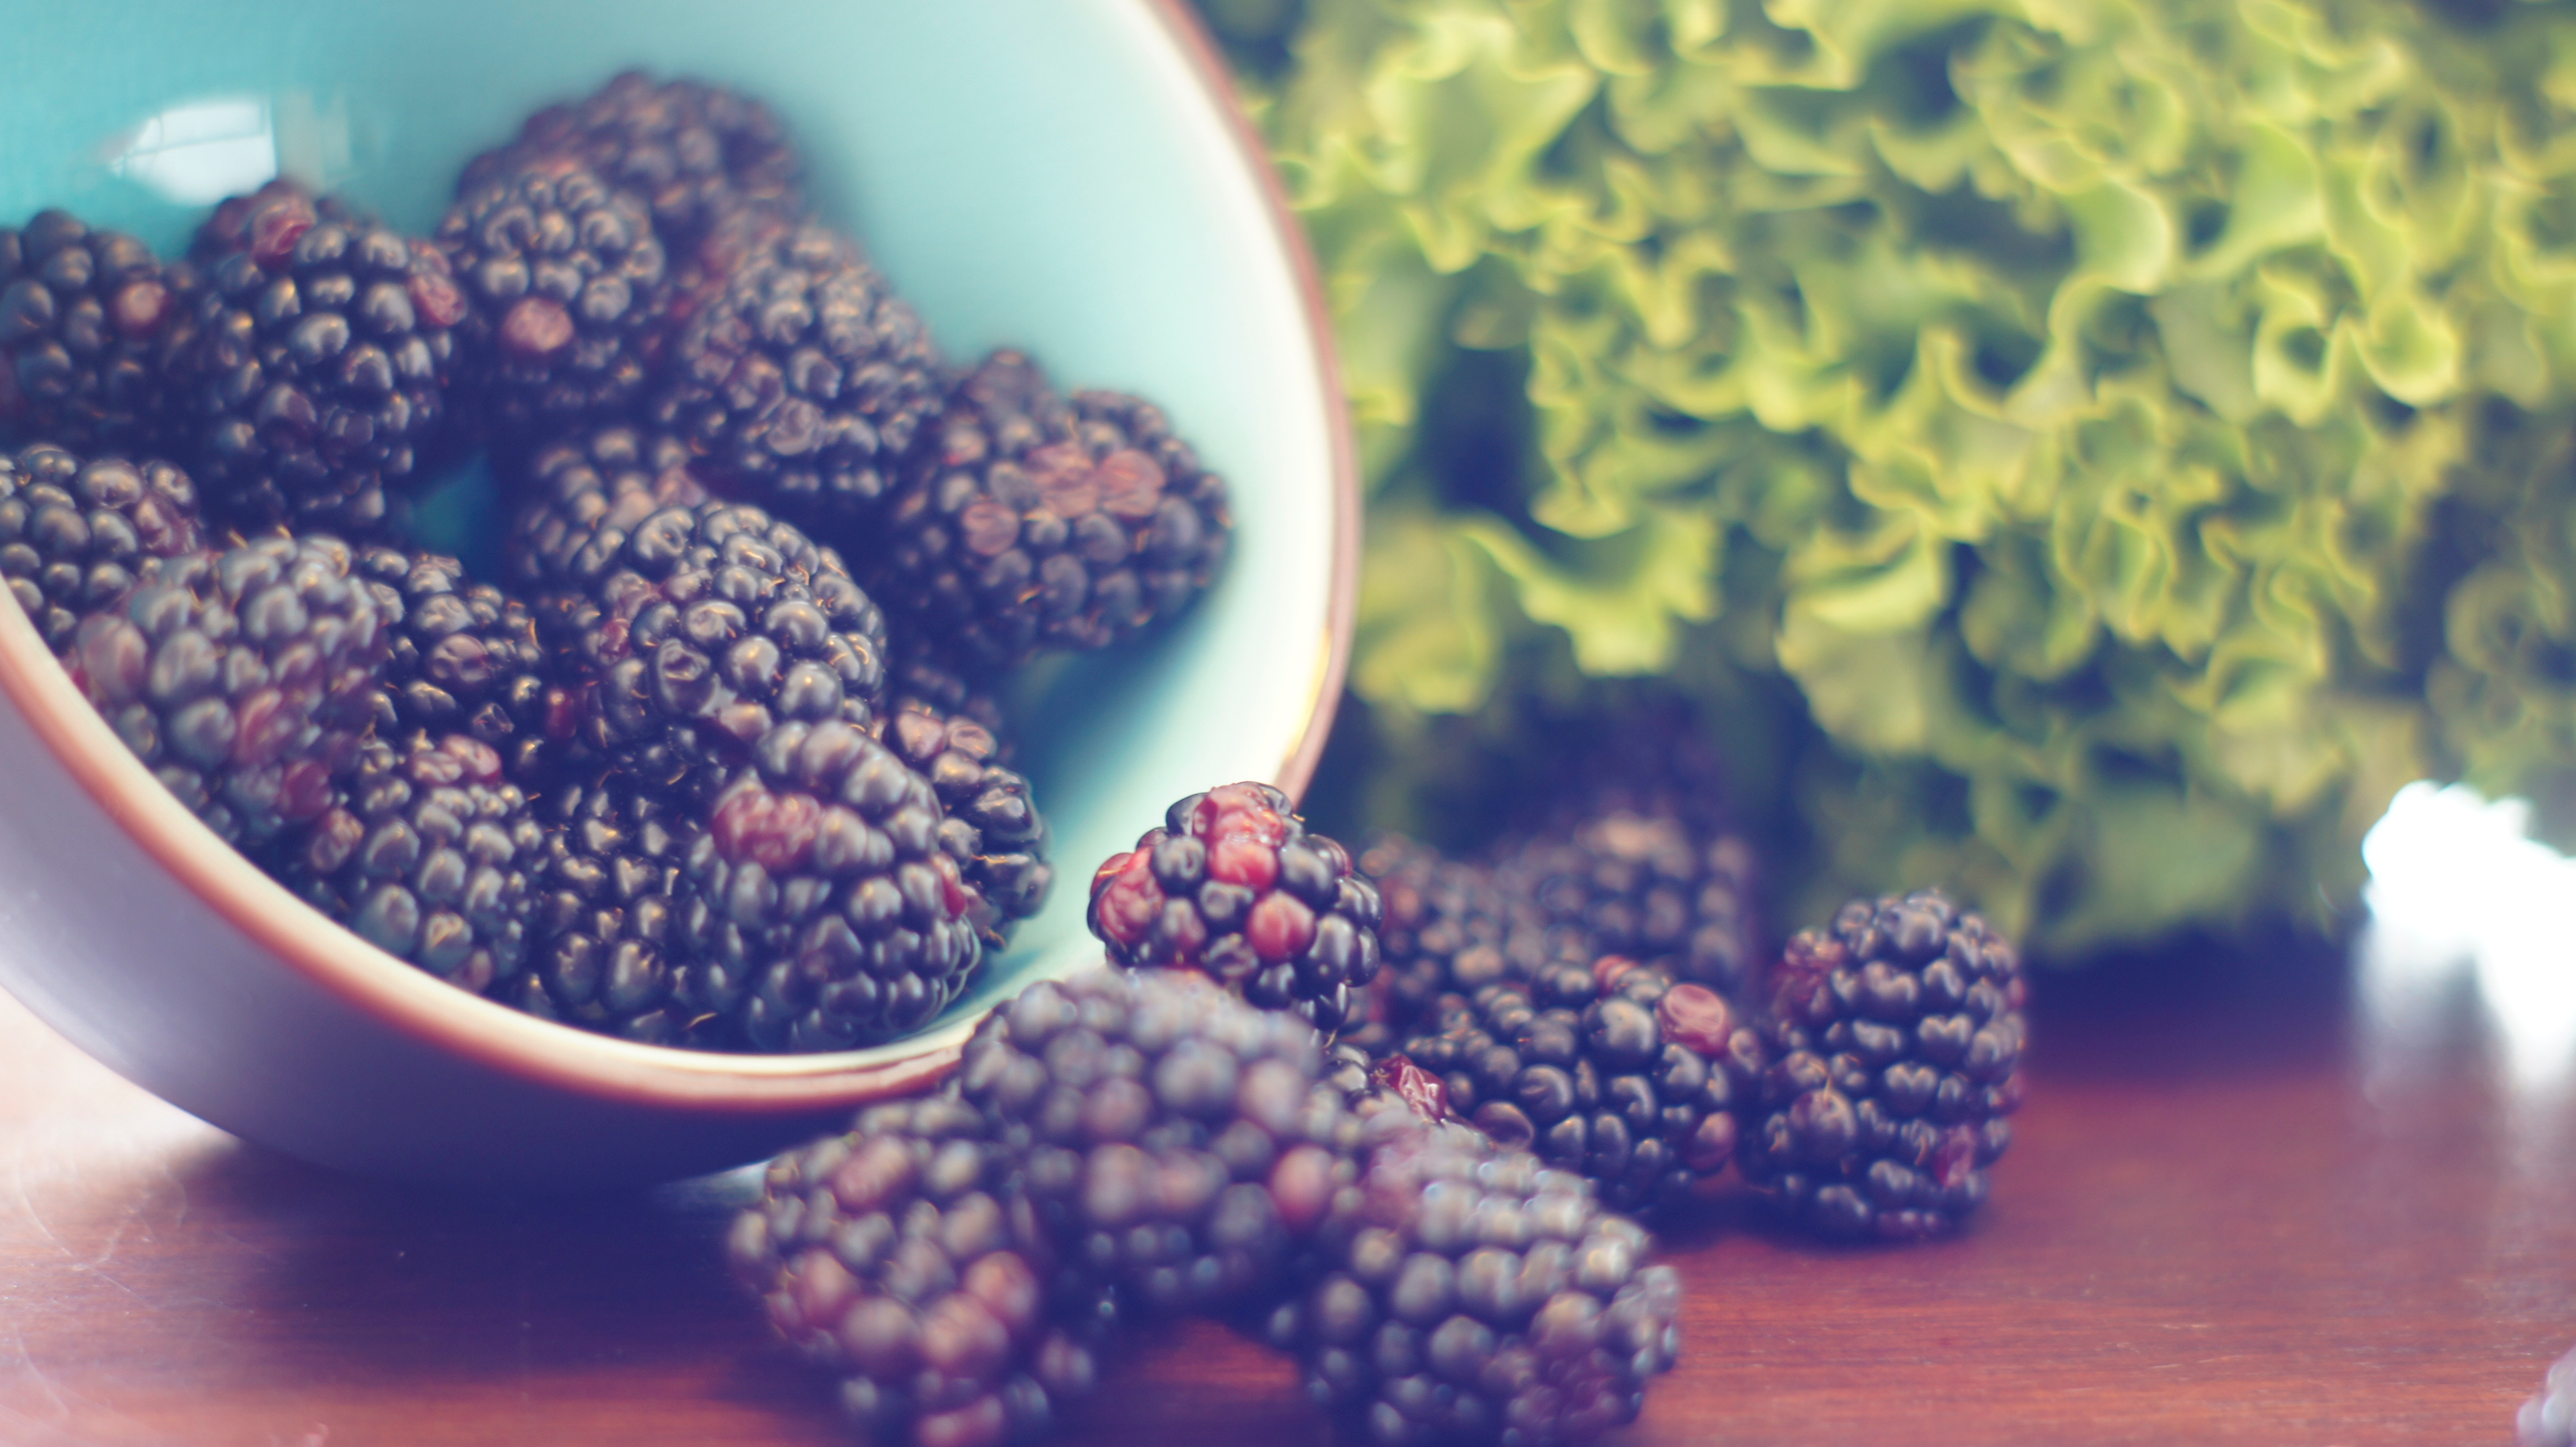 The Blackberry Harvest and Political Decisions